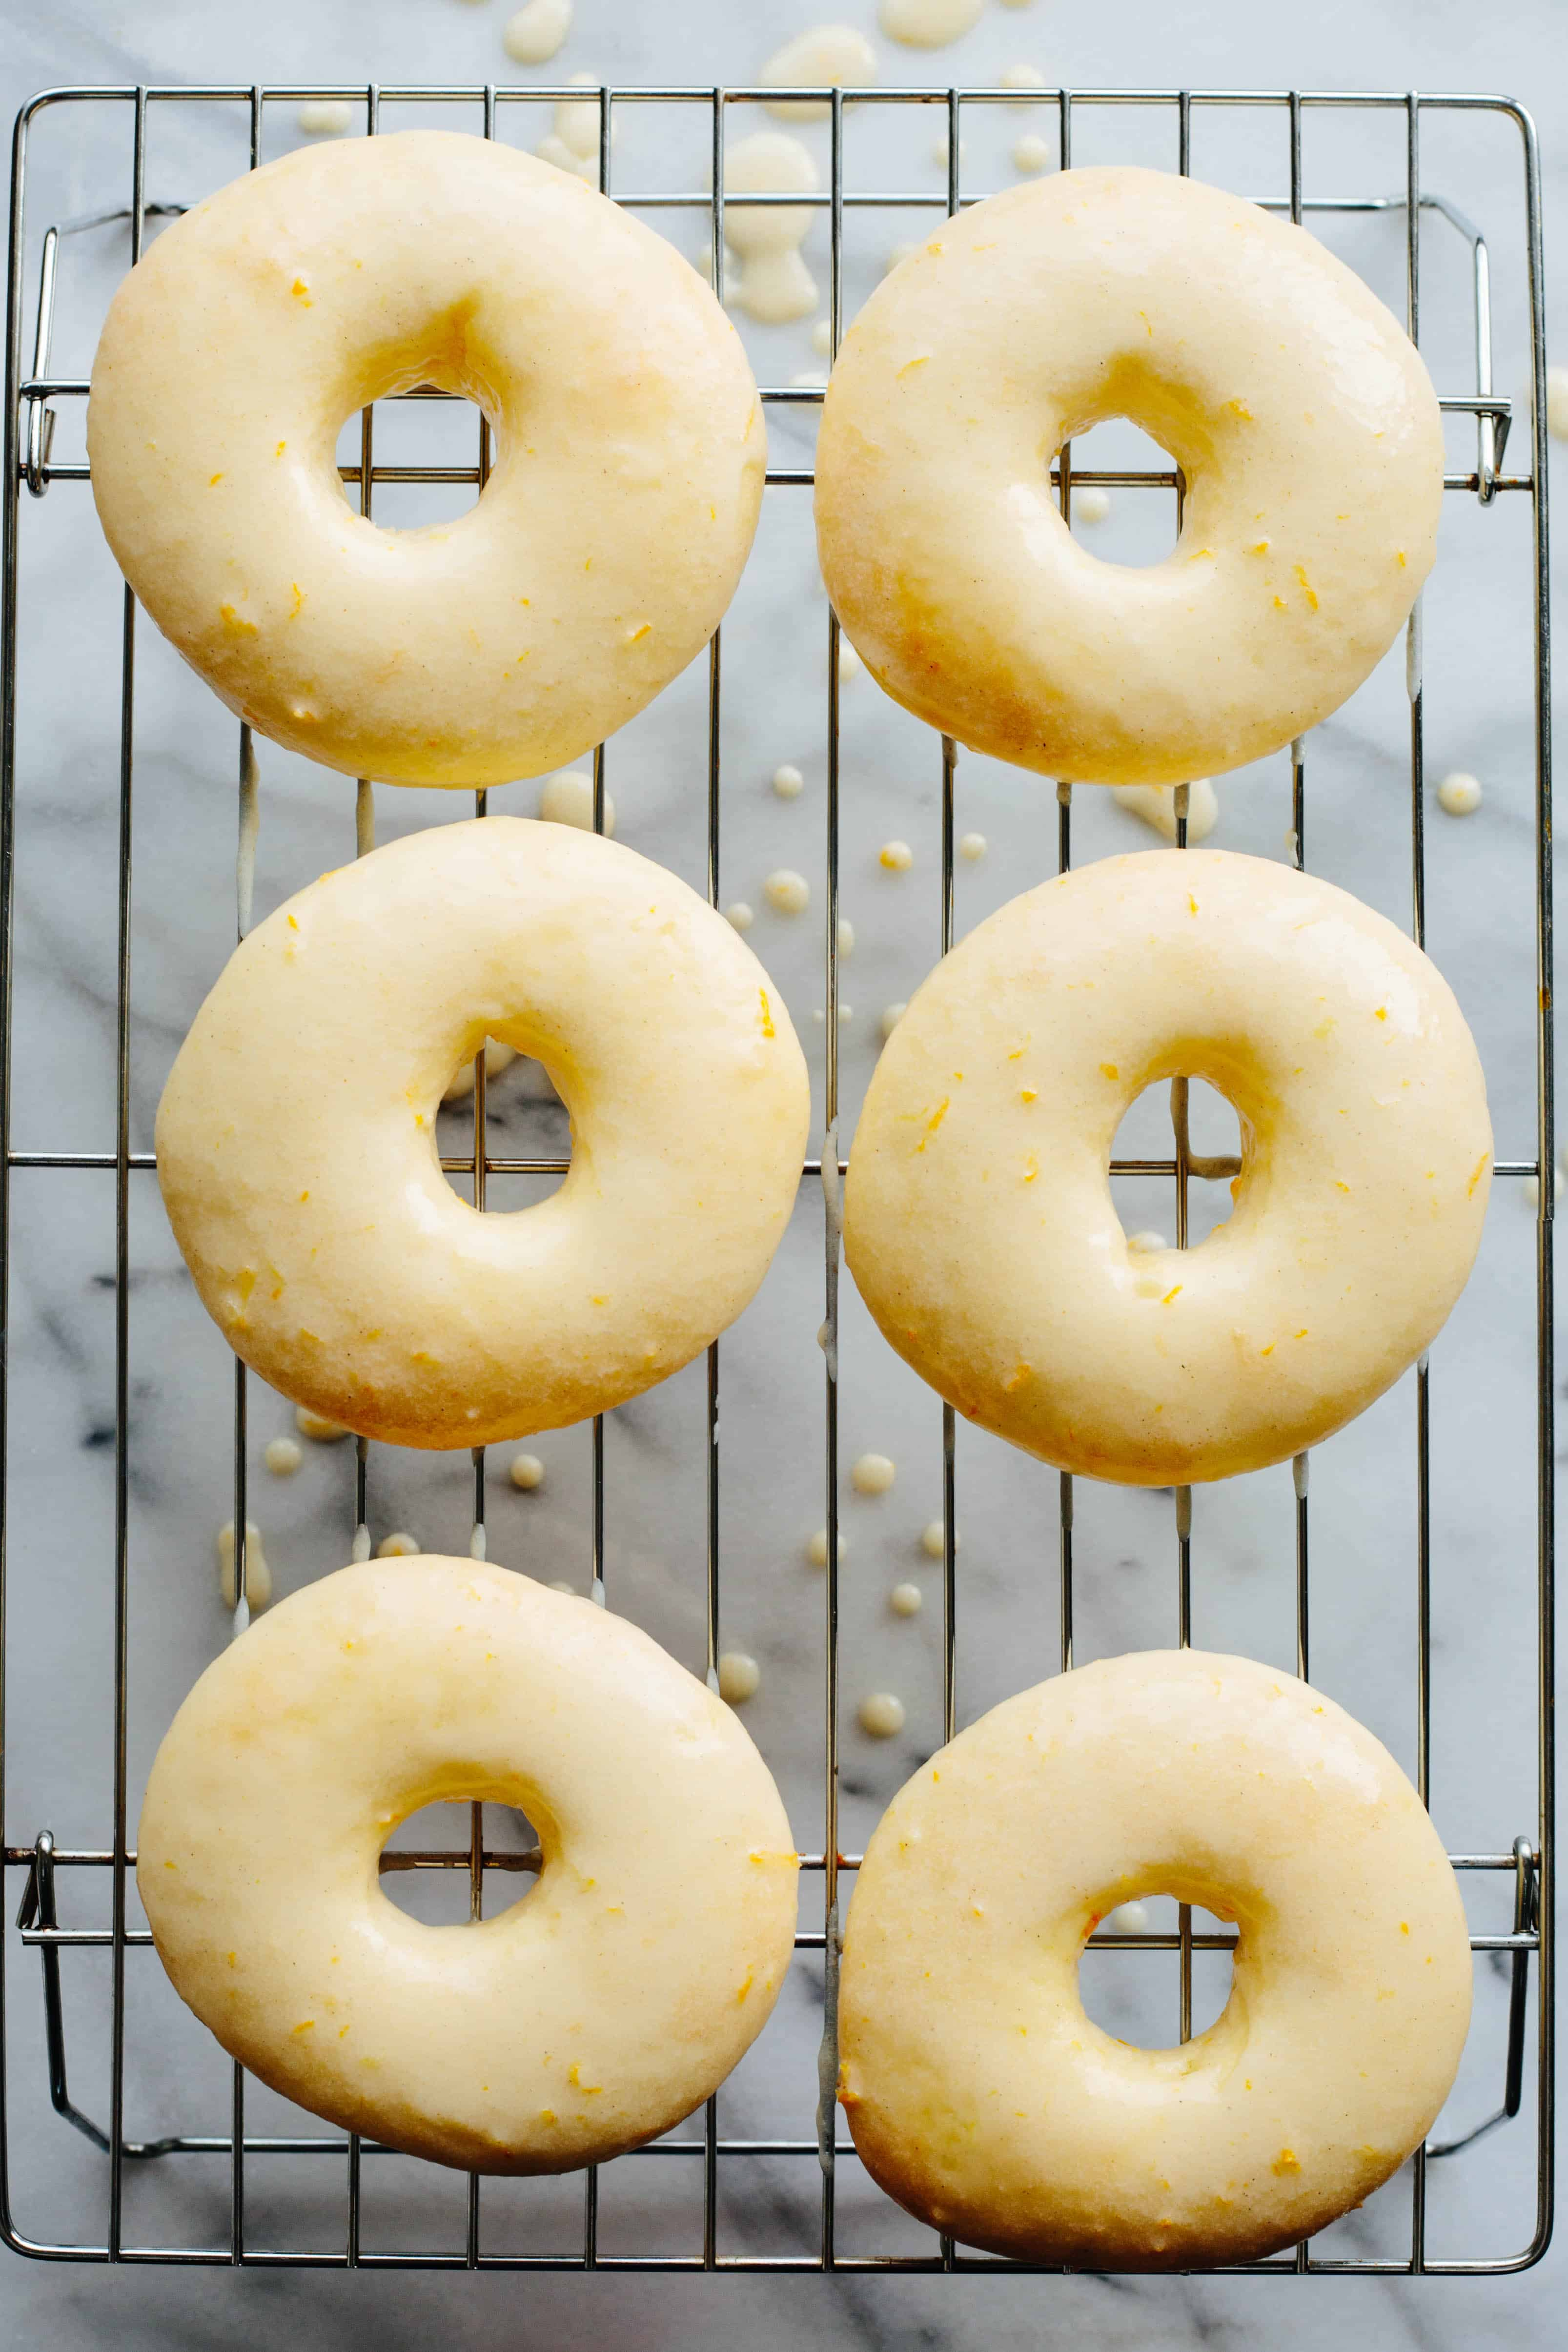 Meyer Lemon Baked Doughnuts: Yeast-Risen BAKED Doughnuts with a tangy Meyer Lemon Glaze | Coley Cooks!